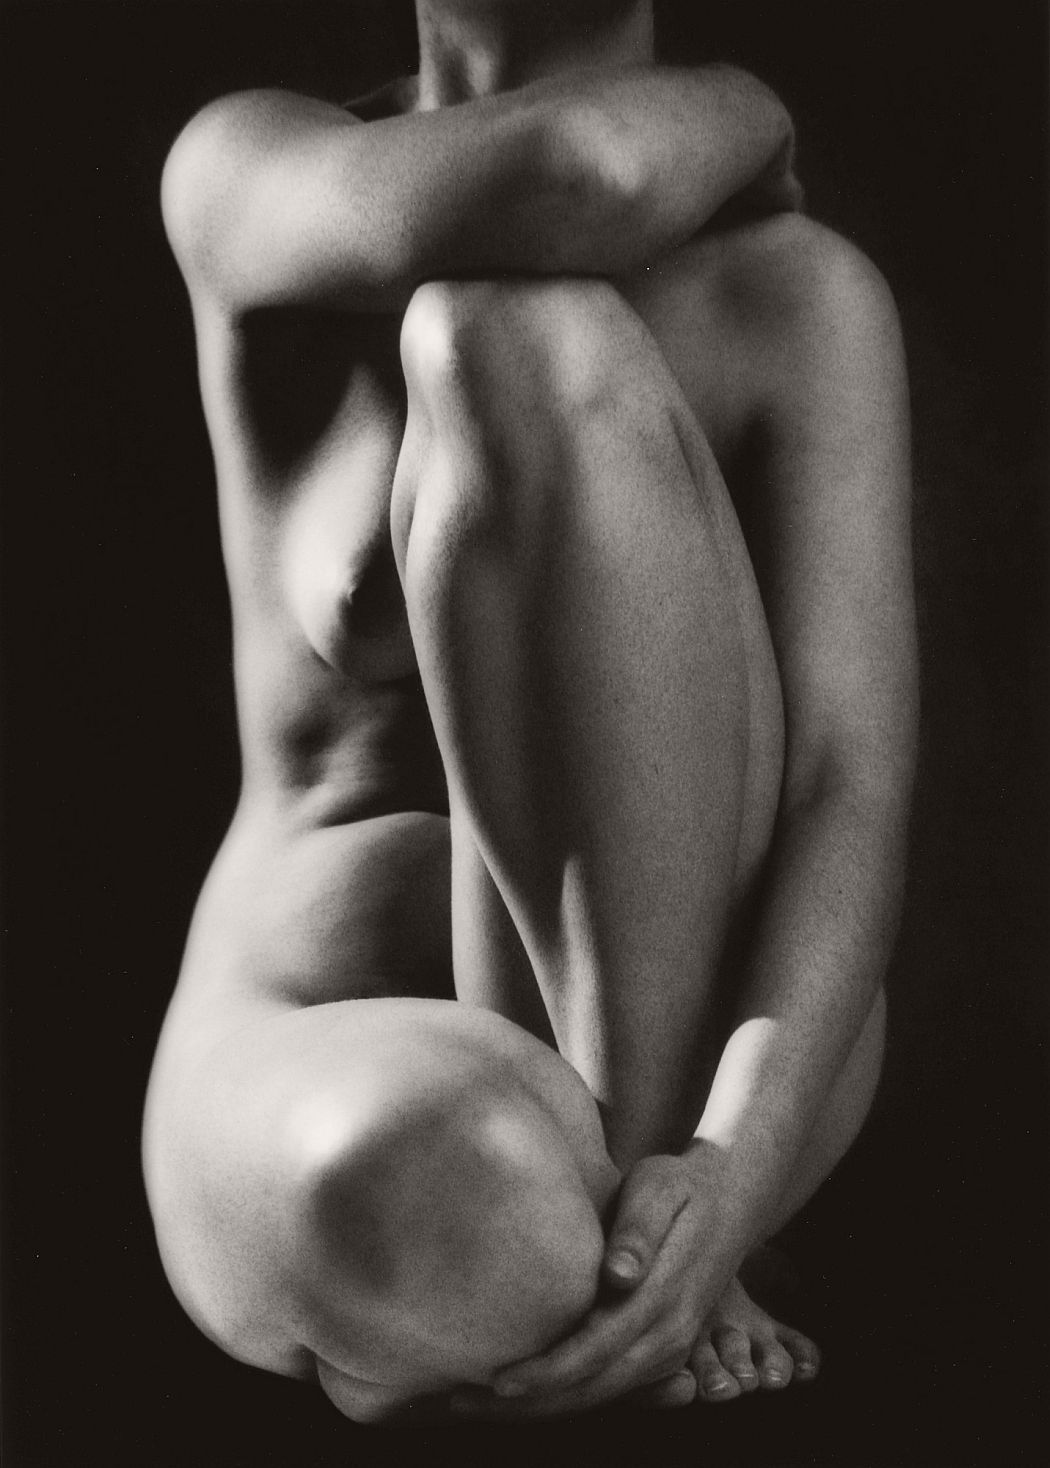 nude-photographer-ruth-bernhard-08